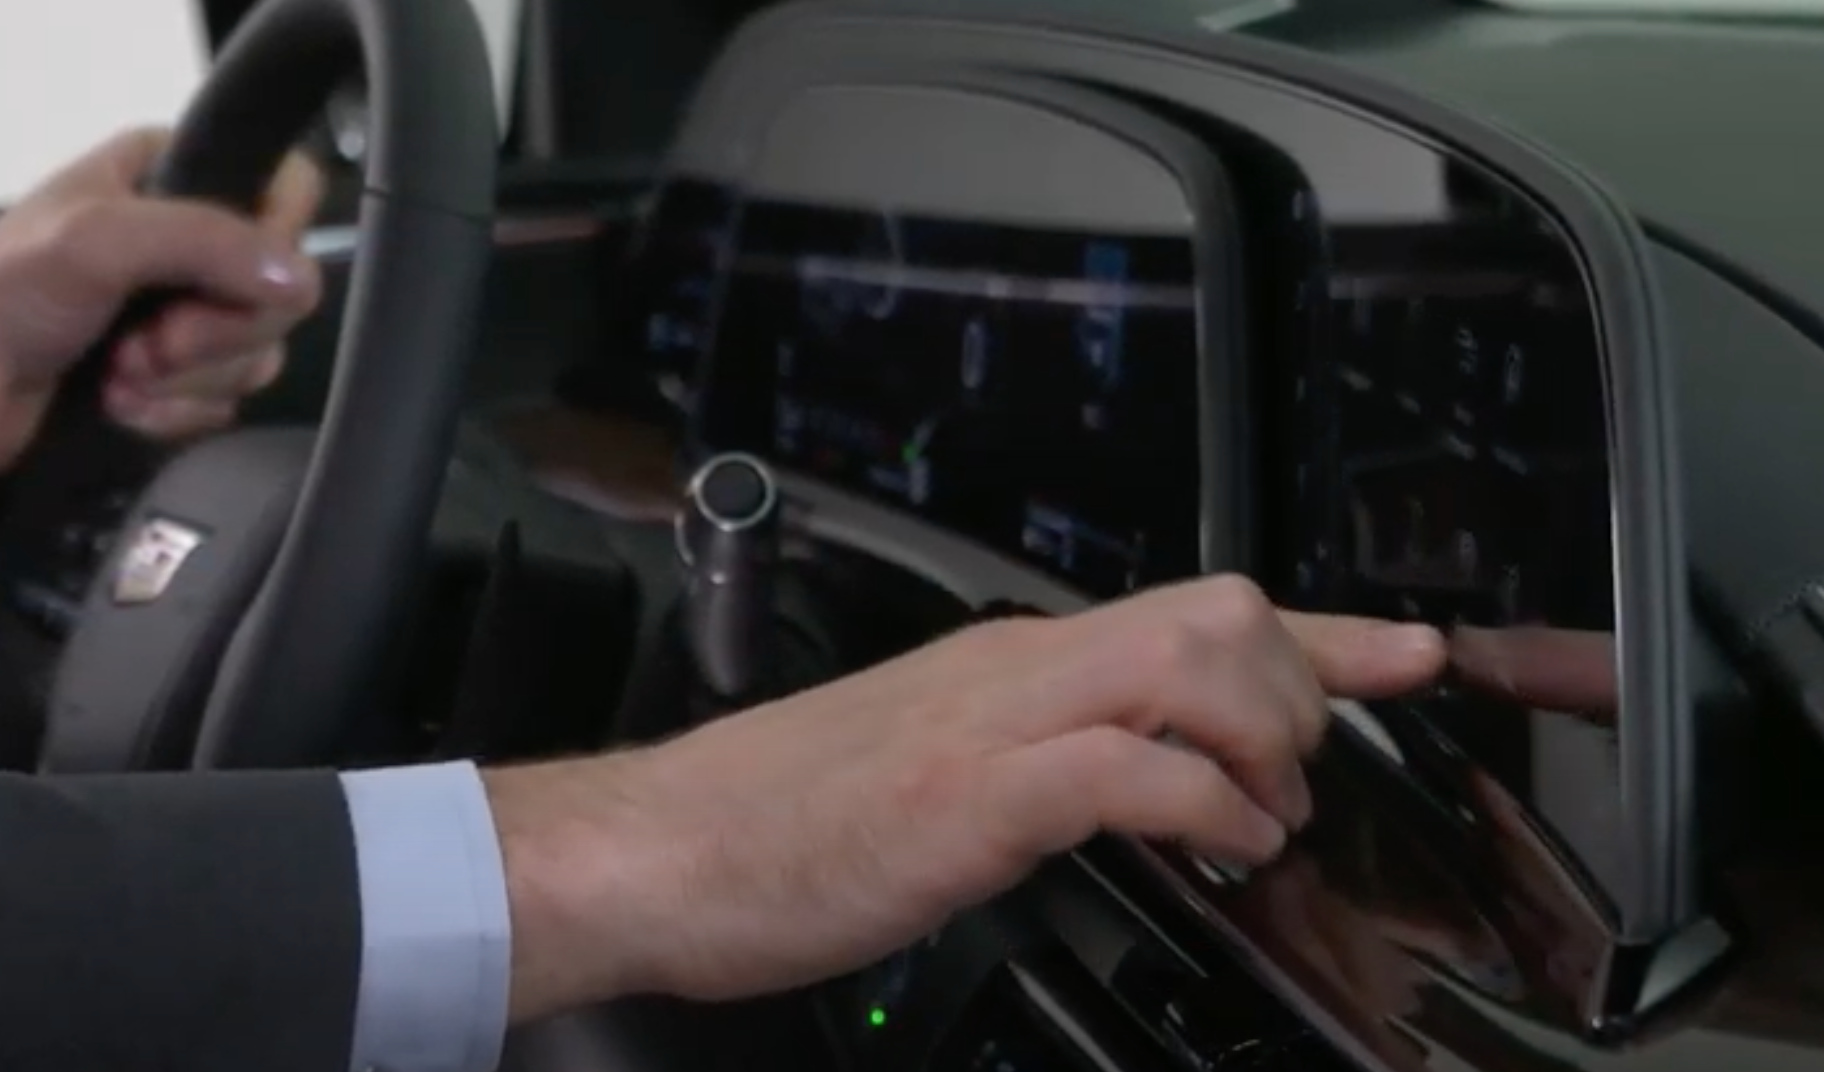 A photo of a user tapping on the infotainment screen showing how big the displays are